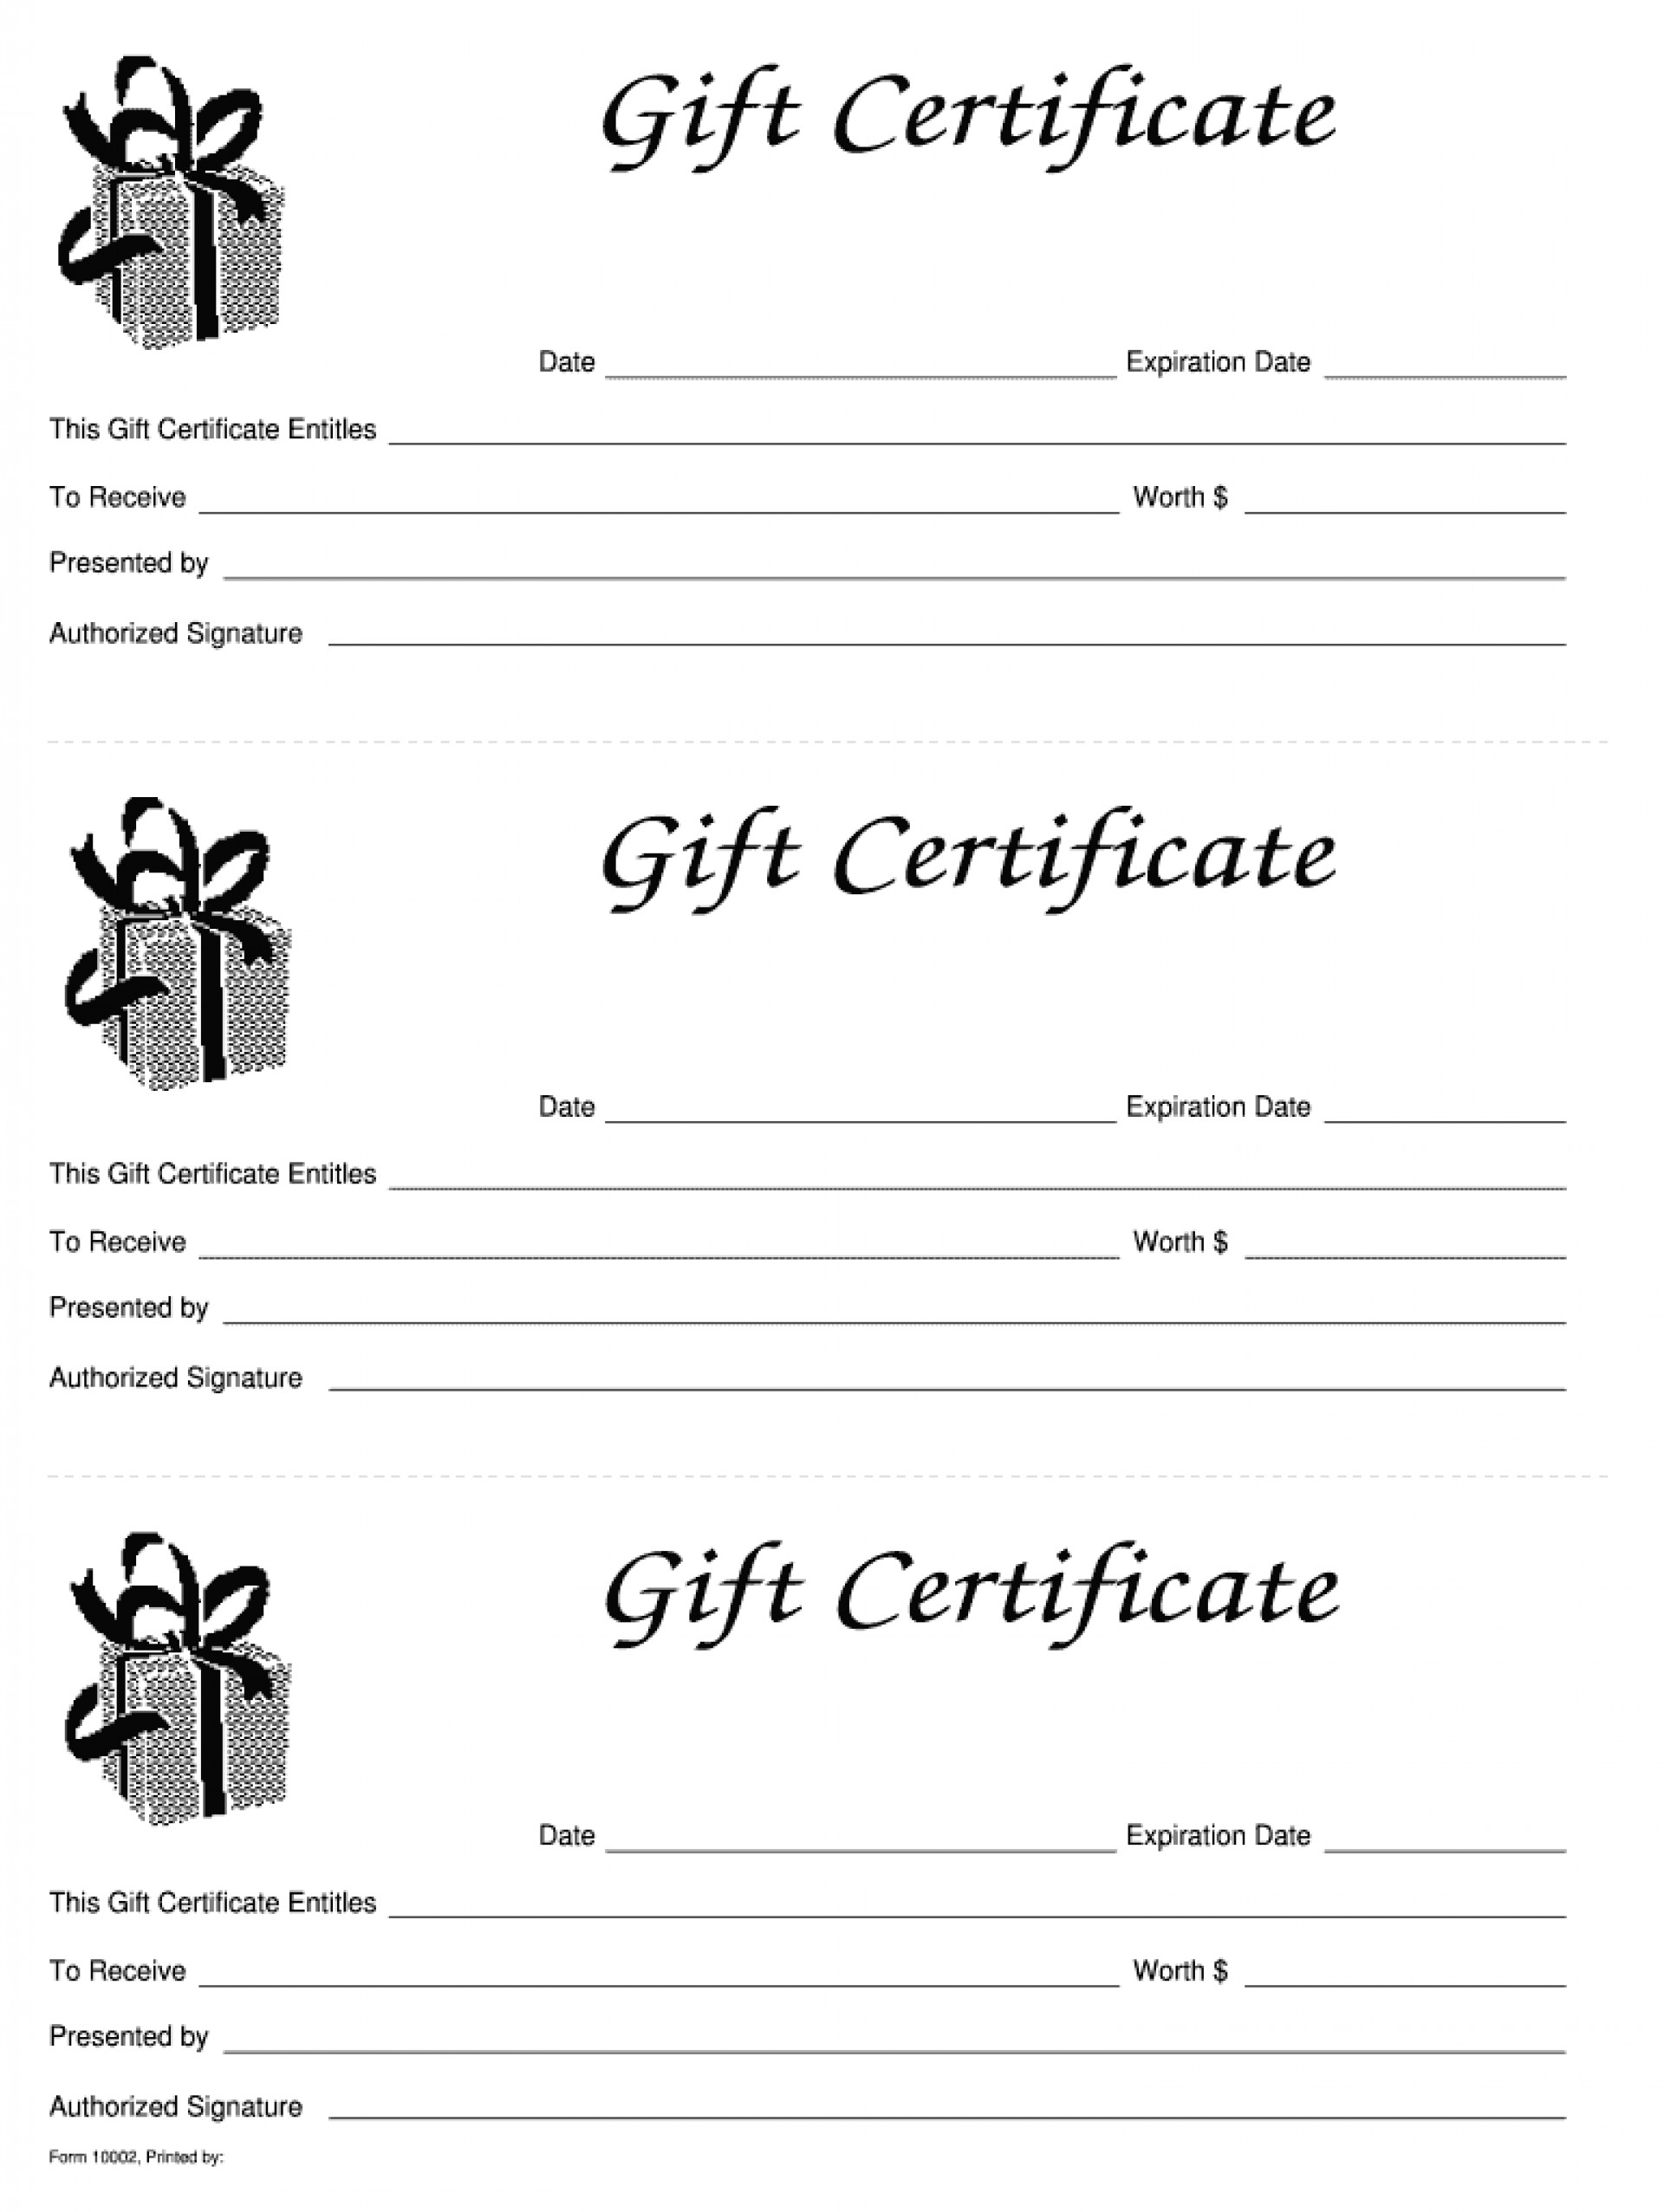 020 Luxury Gift Certificate Template Vector Card Free Inside Black And White Gift Certificate Template Free